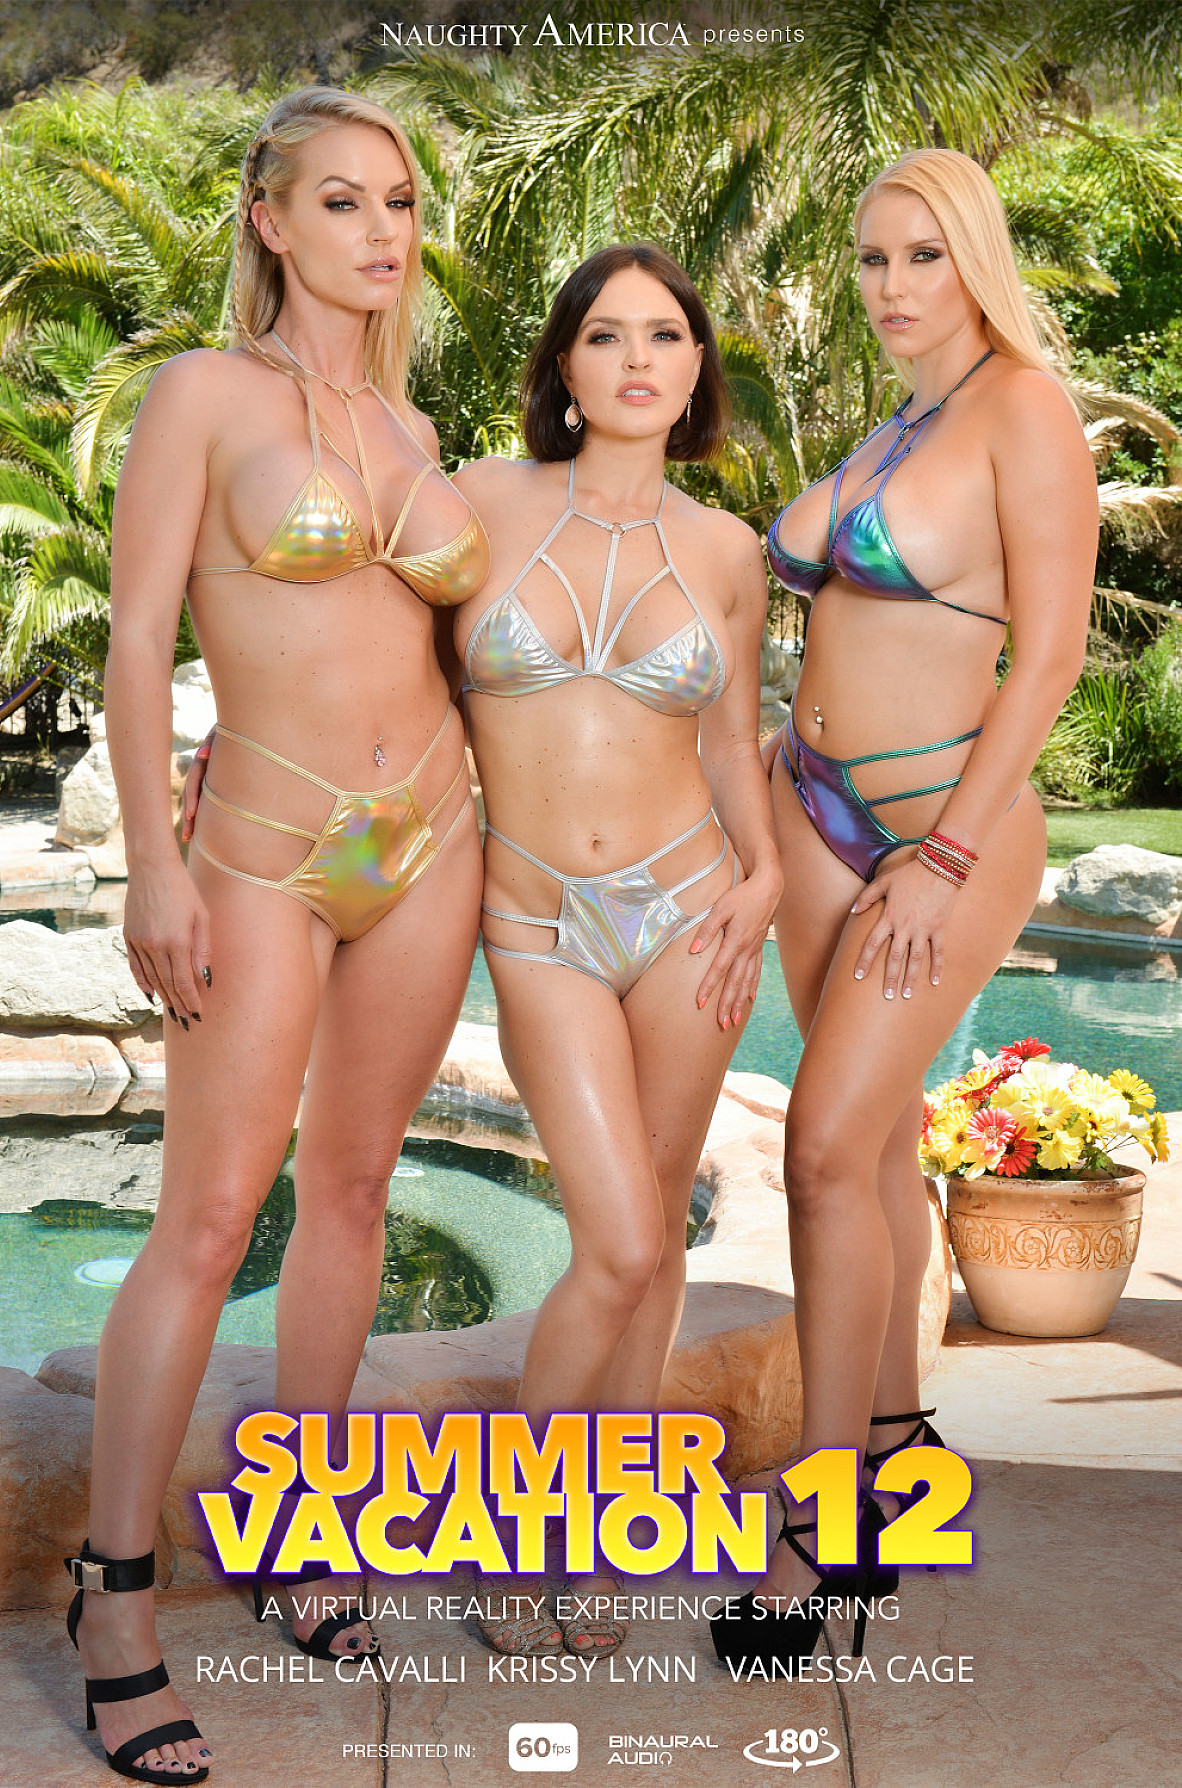 Watch Krissy Lynn, Rachael Cavalli, Vanessa Cage and Justin Hunt VR video in Naughty America